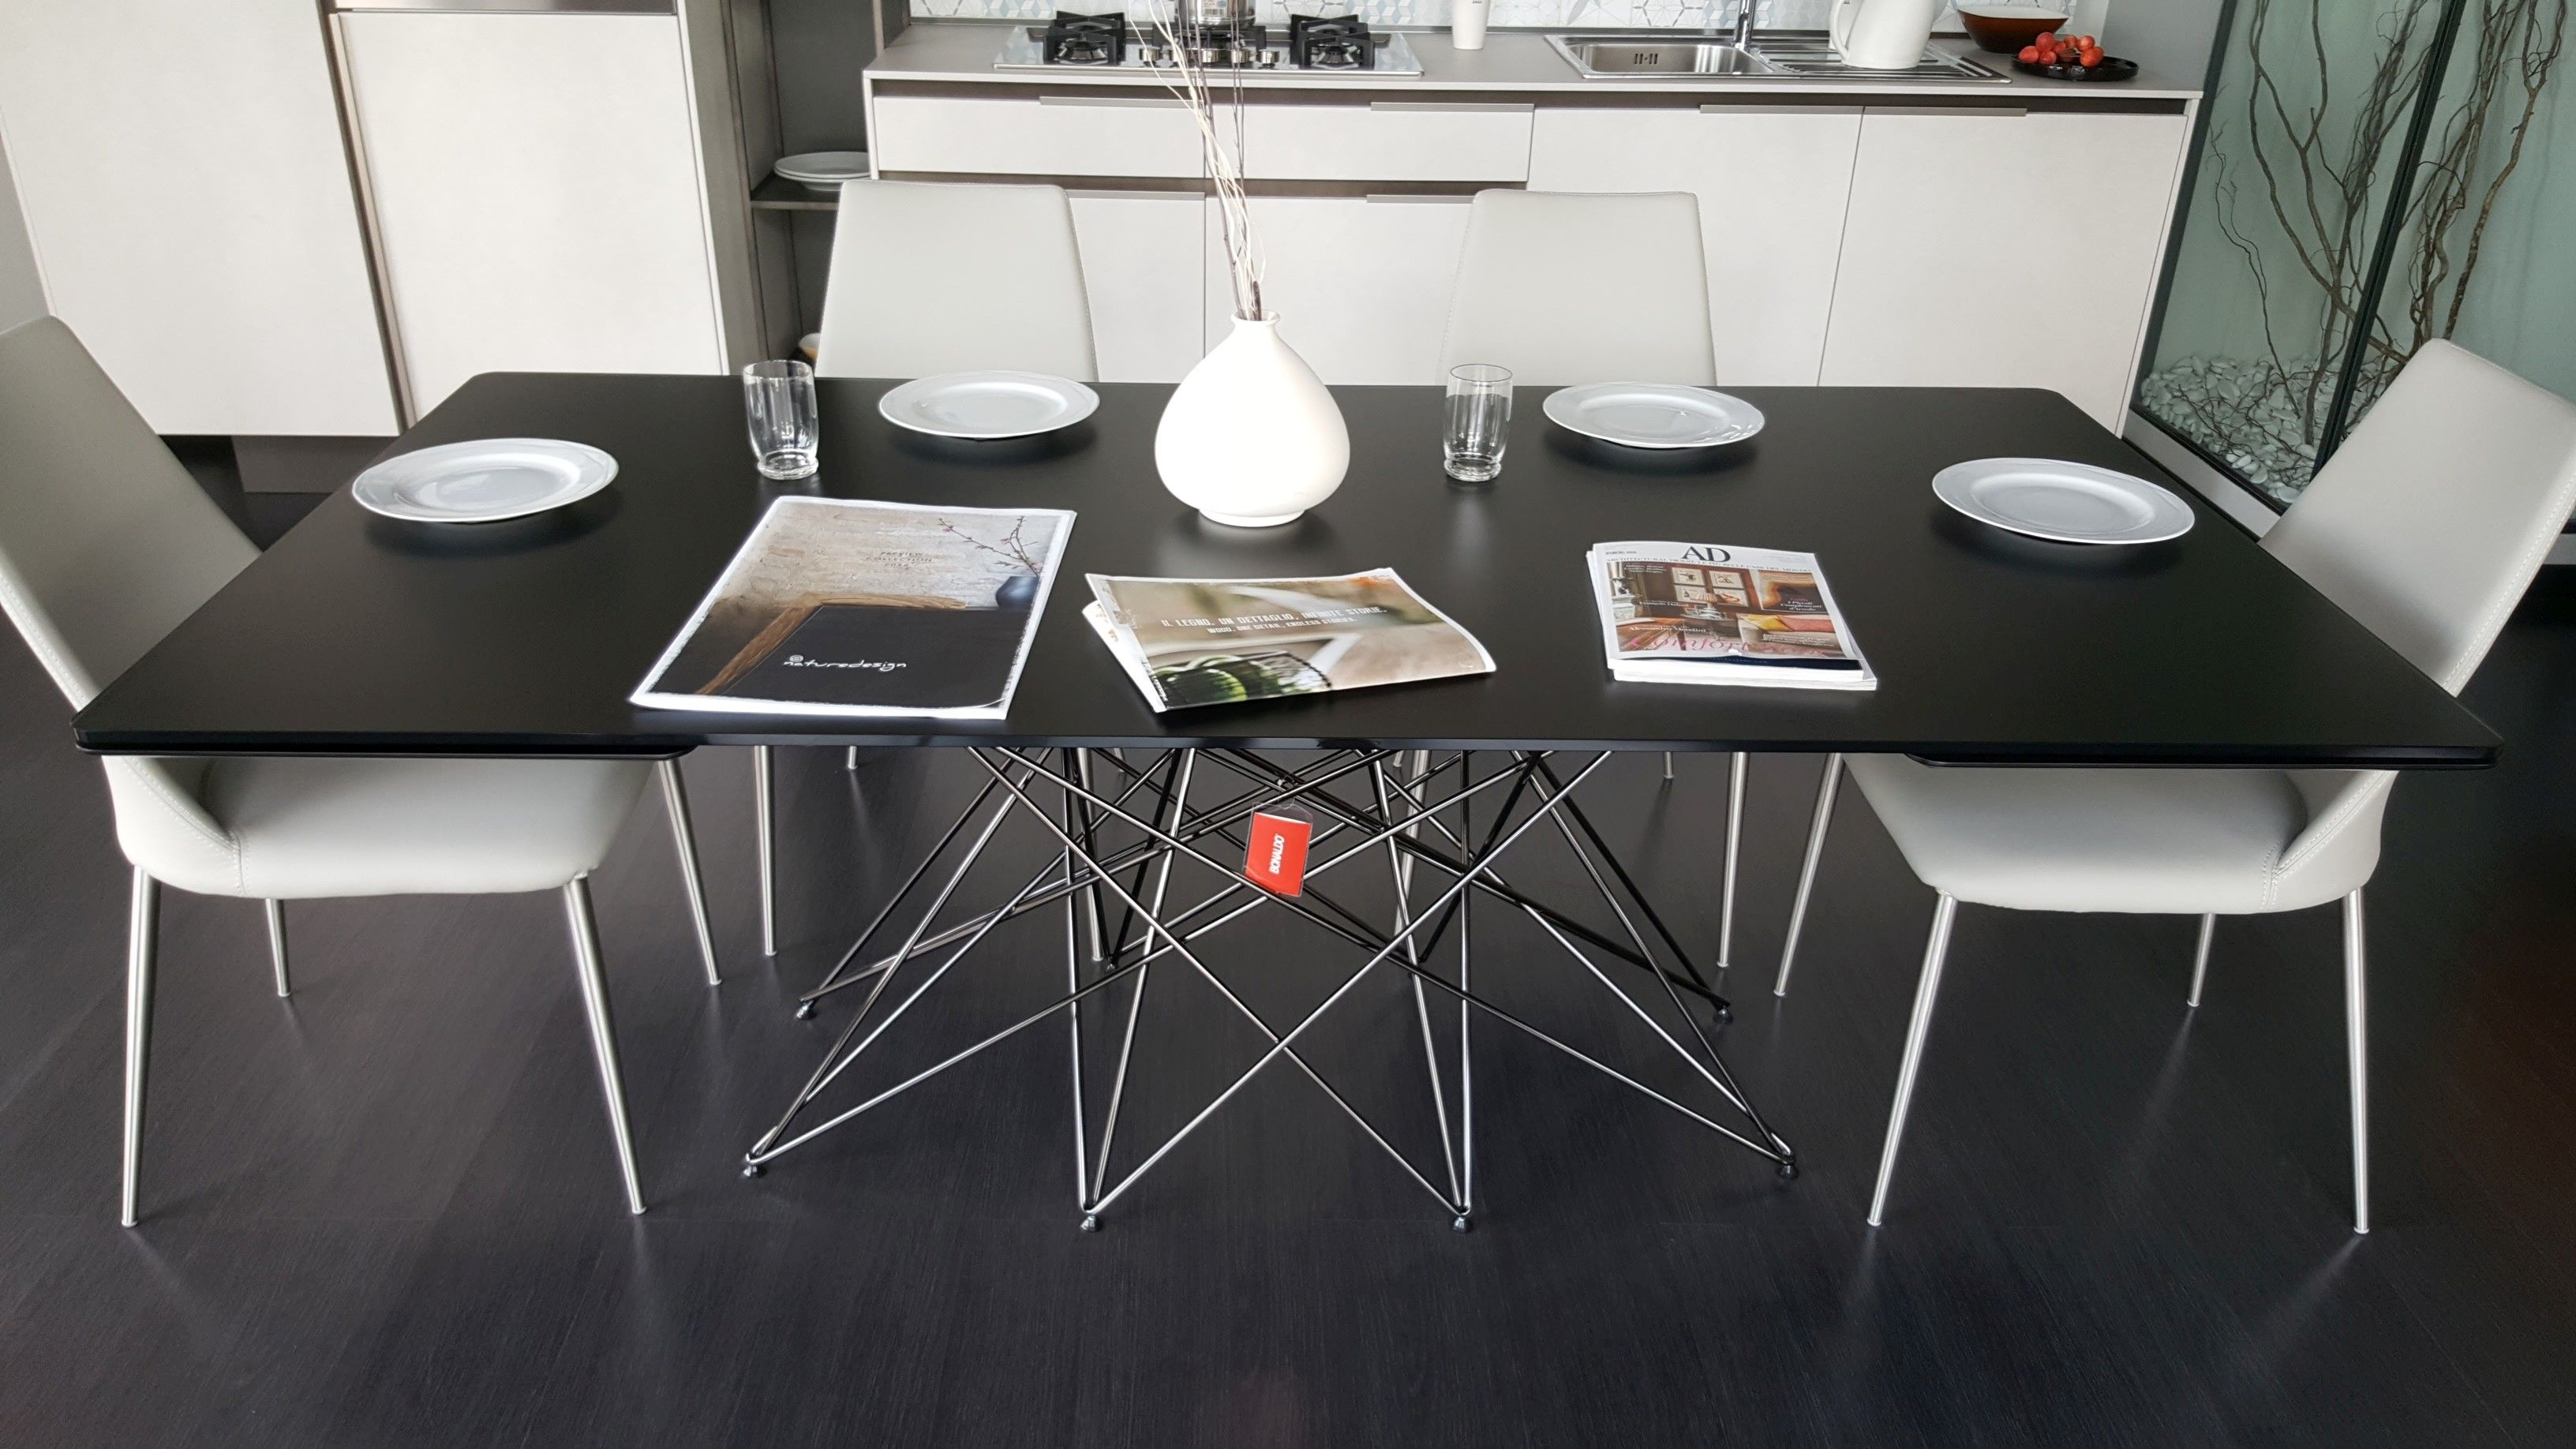 Bonaldo Octa Dining Table. Bonaldo With Bonaldo Octa Dining Table ...